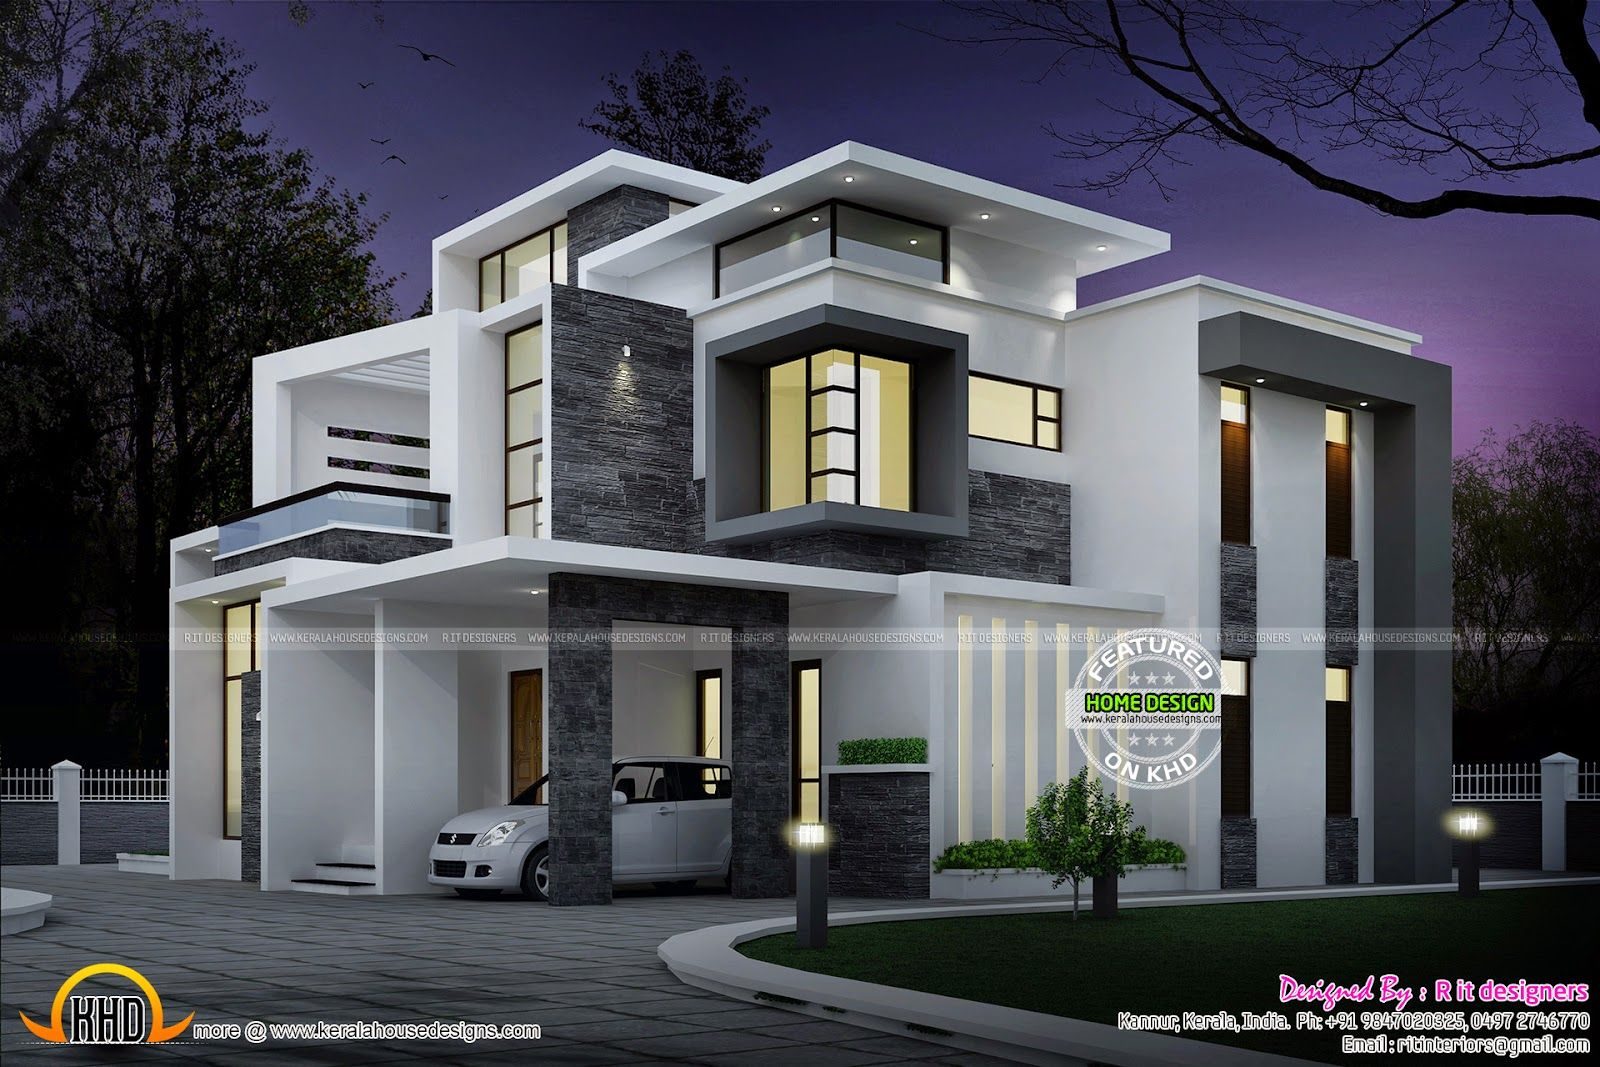 Home design bilder kerala niranjan km niranjankmneeru on pinterest